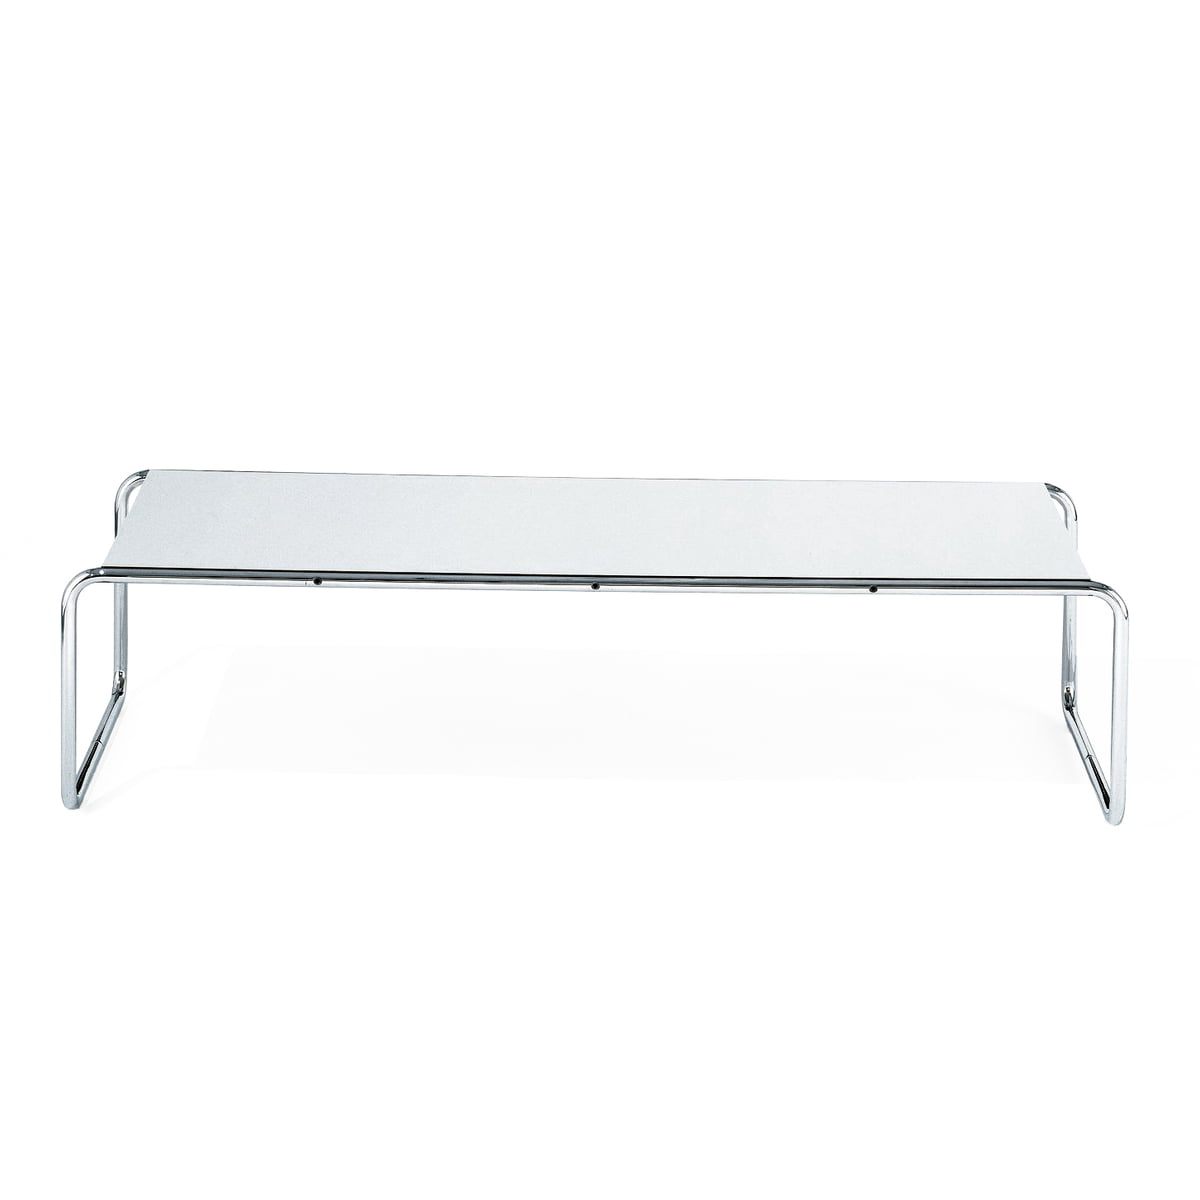 Knoll   Laccio 2 Couchtisch   Weiss